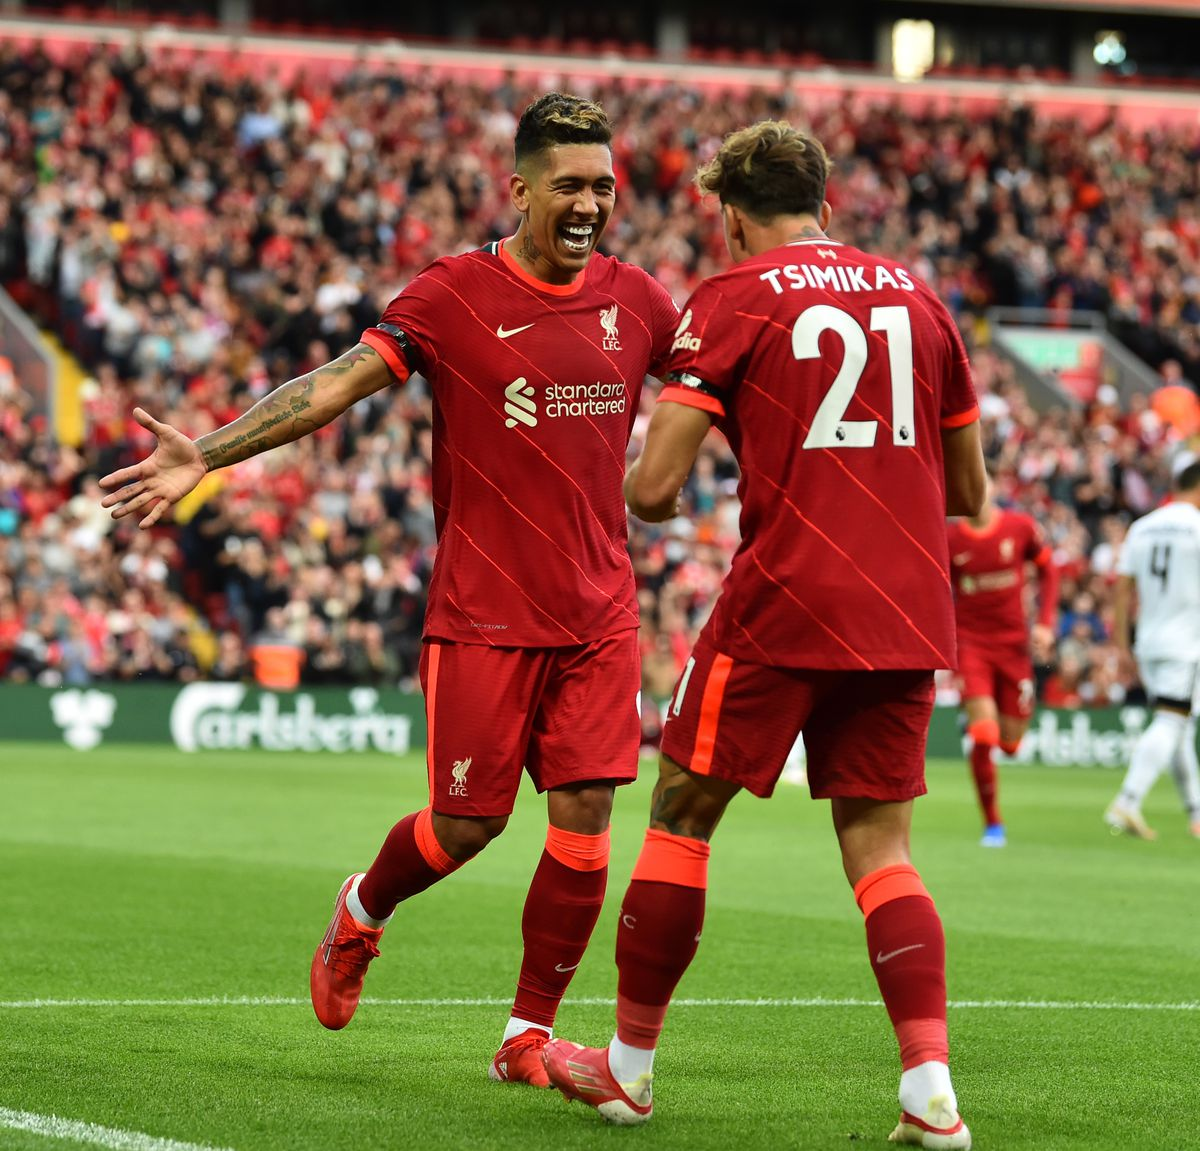 Roberto Firmino of Liverpool celebrates after scoring the second goal at Anfield on August 09, 2021 in Liverpool, England.